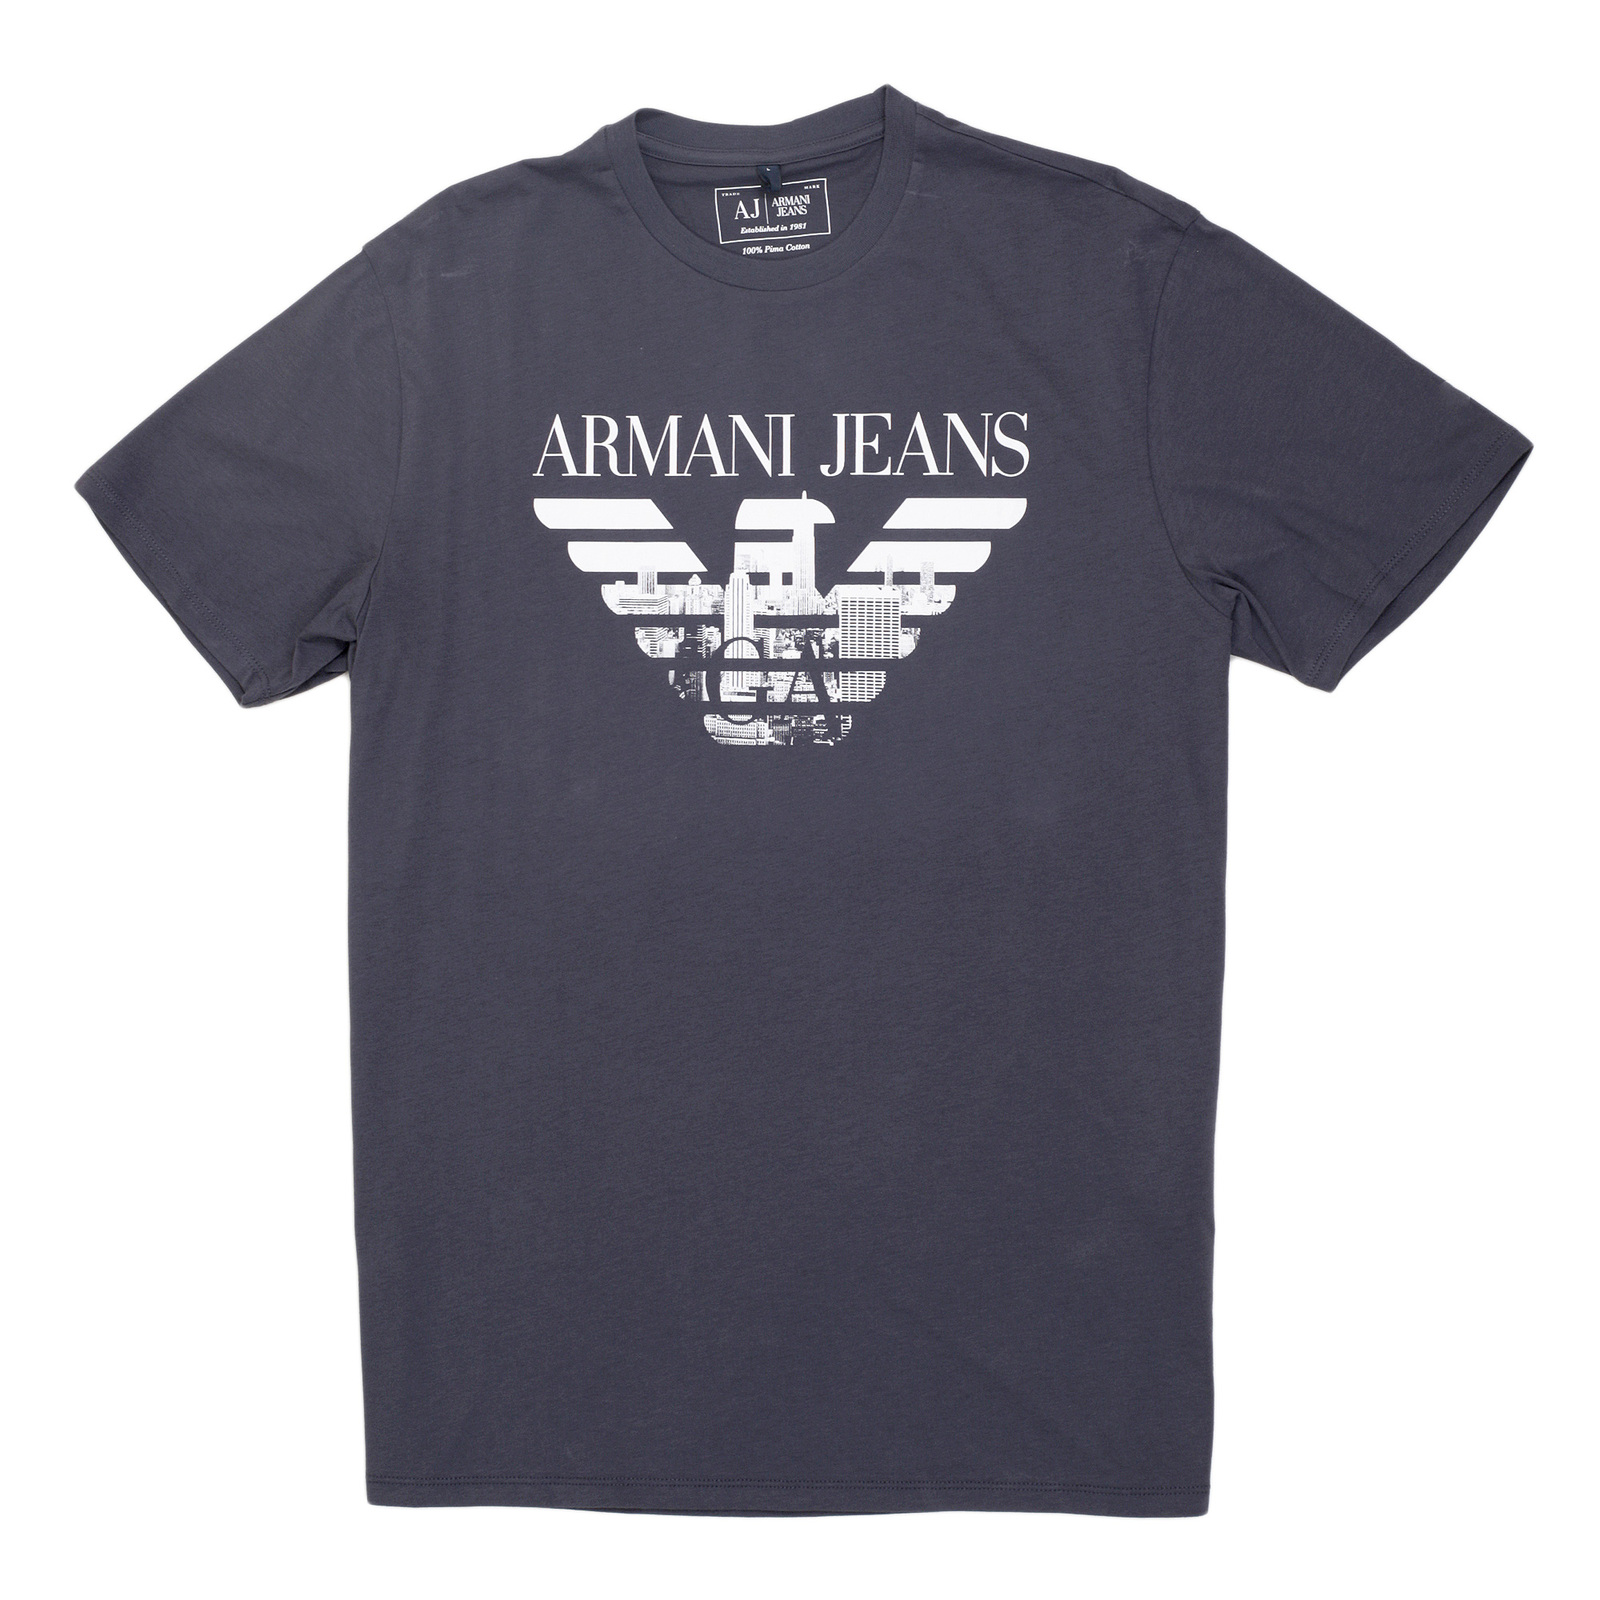 8ffe2c95 Armani Jeans T Shirt with Signature Logo. Buy Now!